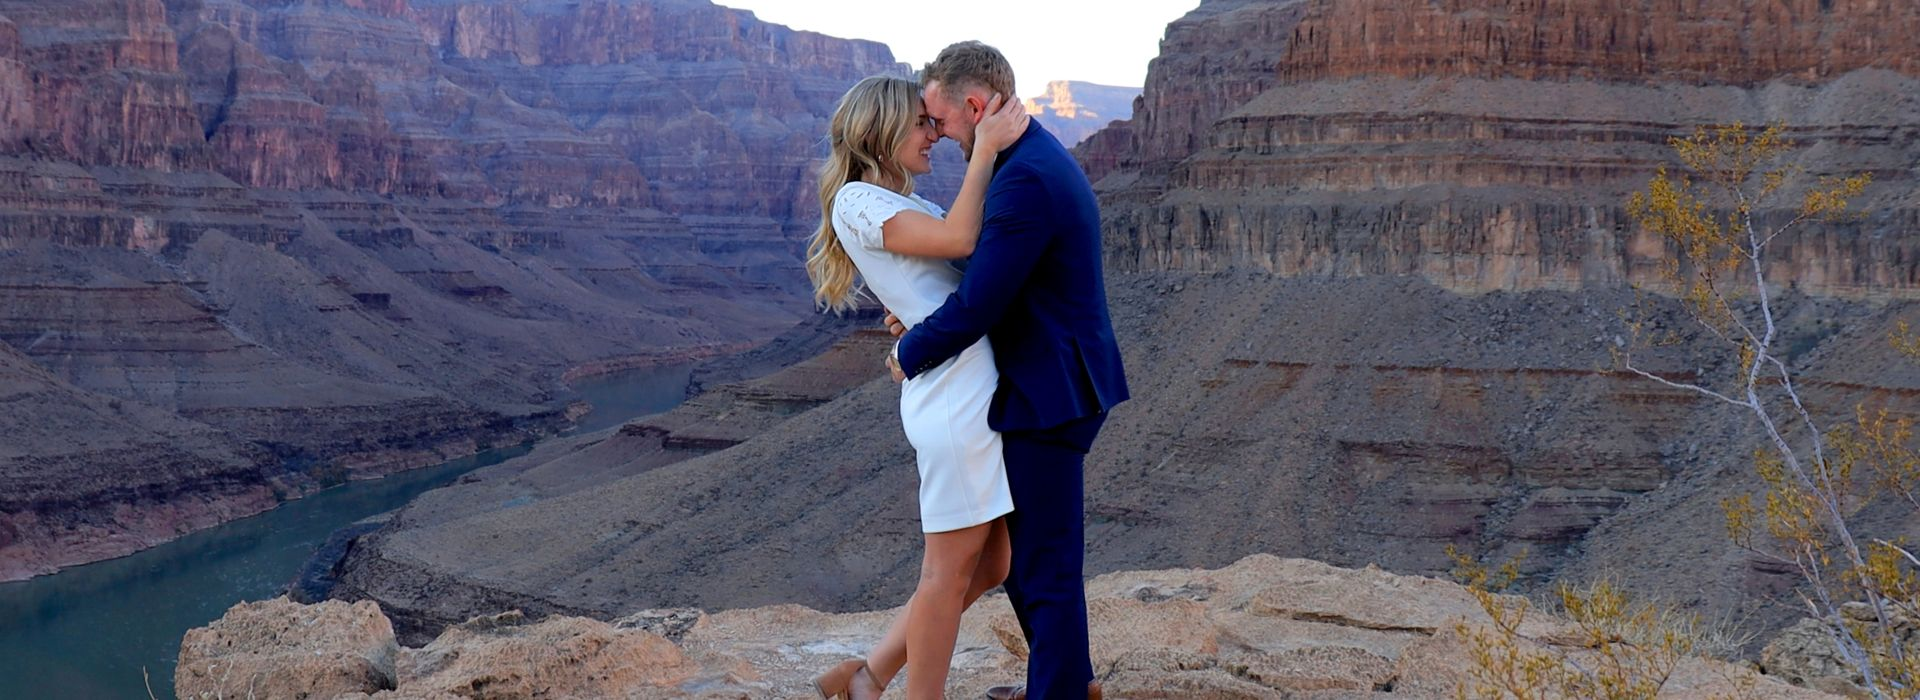 Grand Canyon proposal with red helicopter landed at the bottom of the canyon.